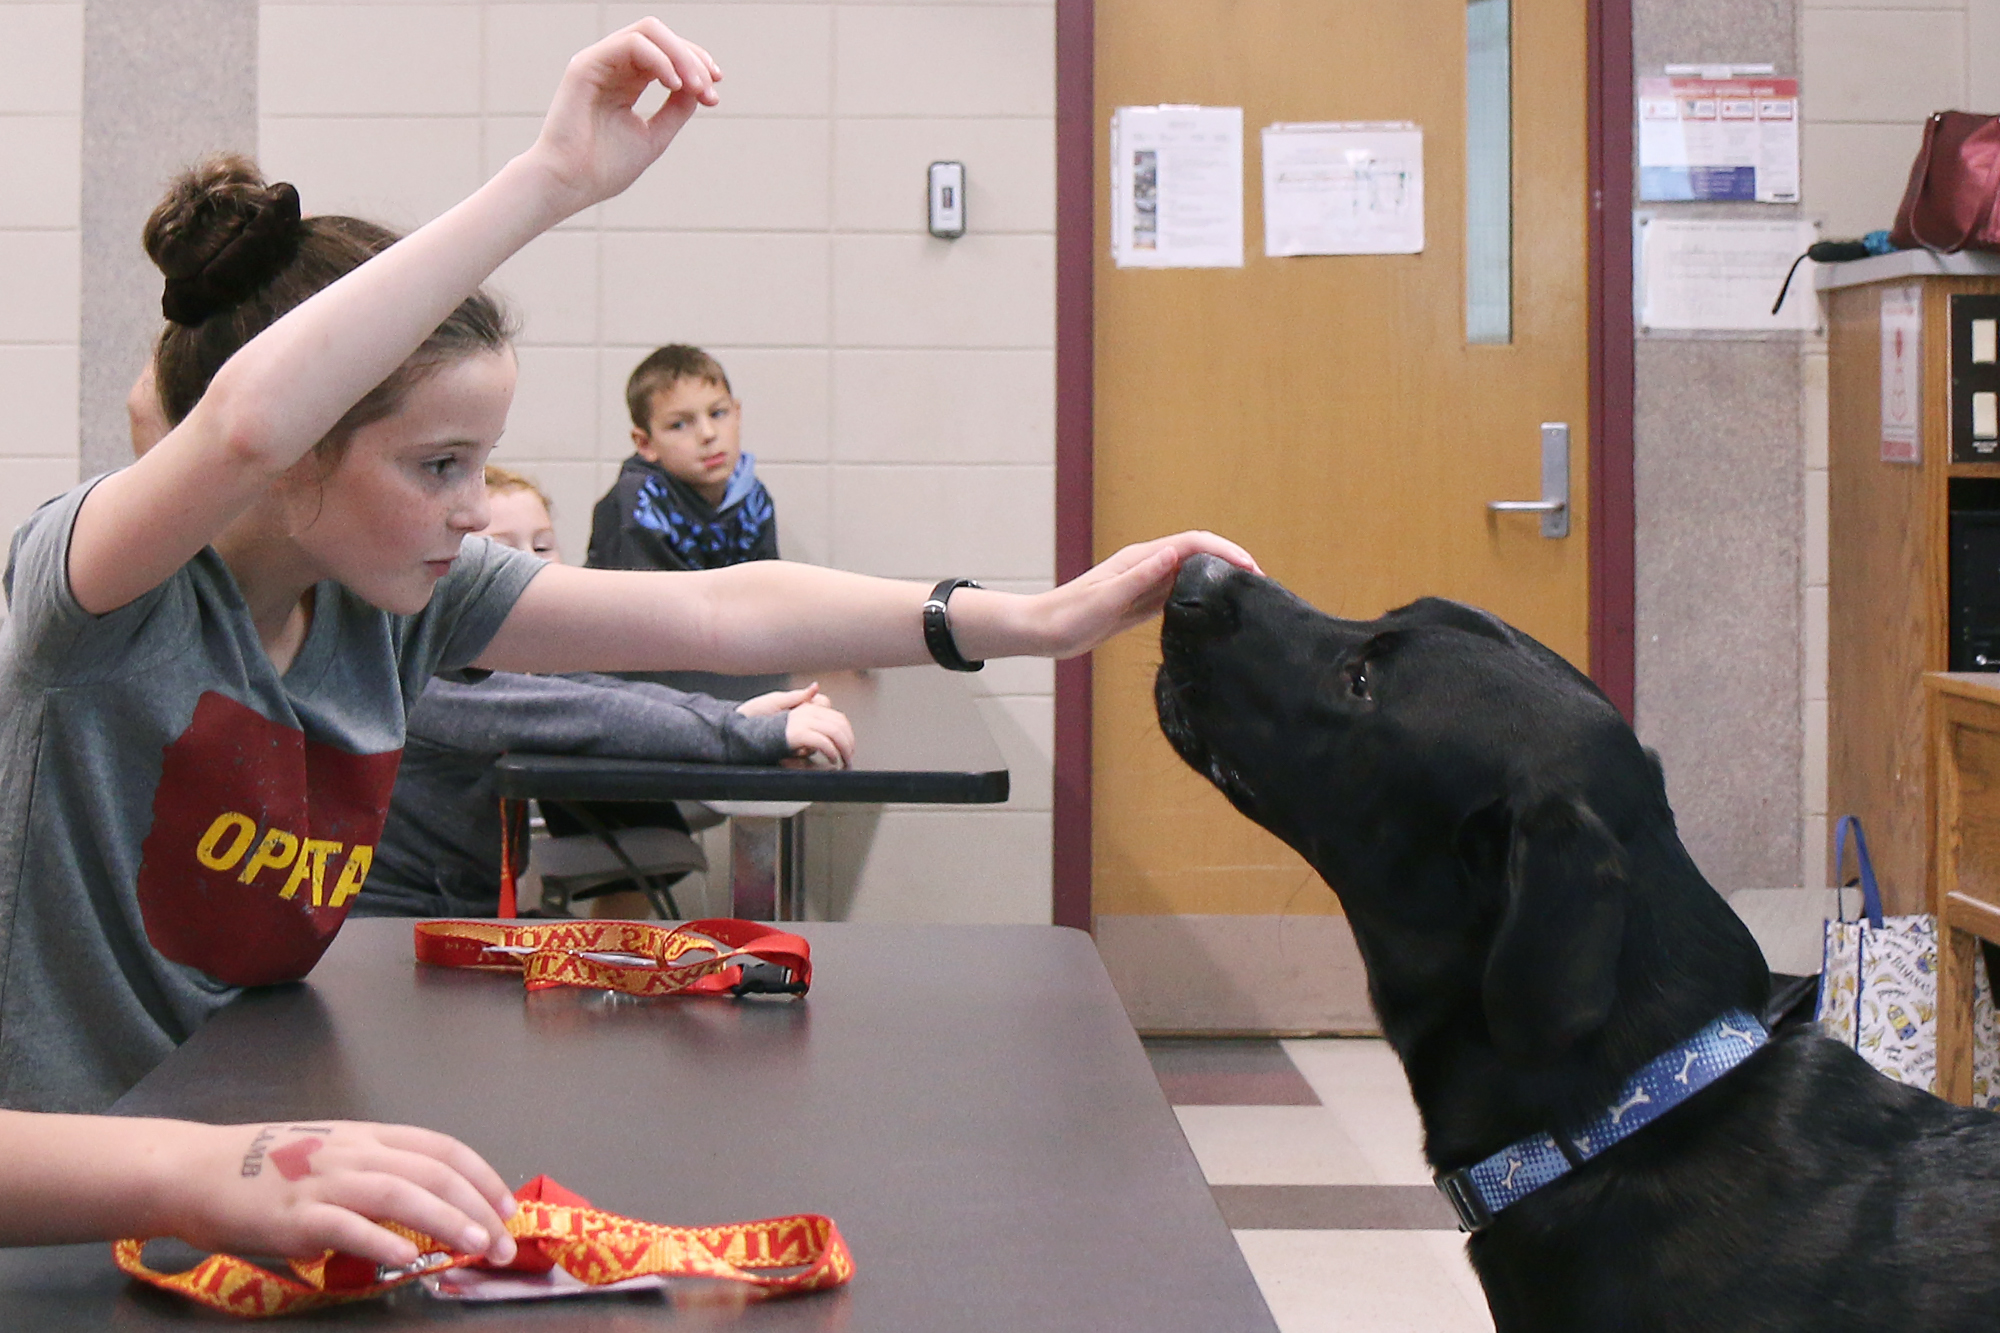 A student practices training a dog.